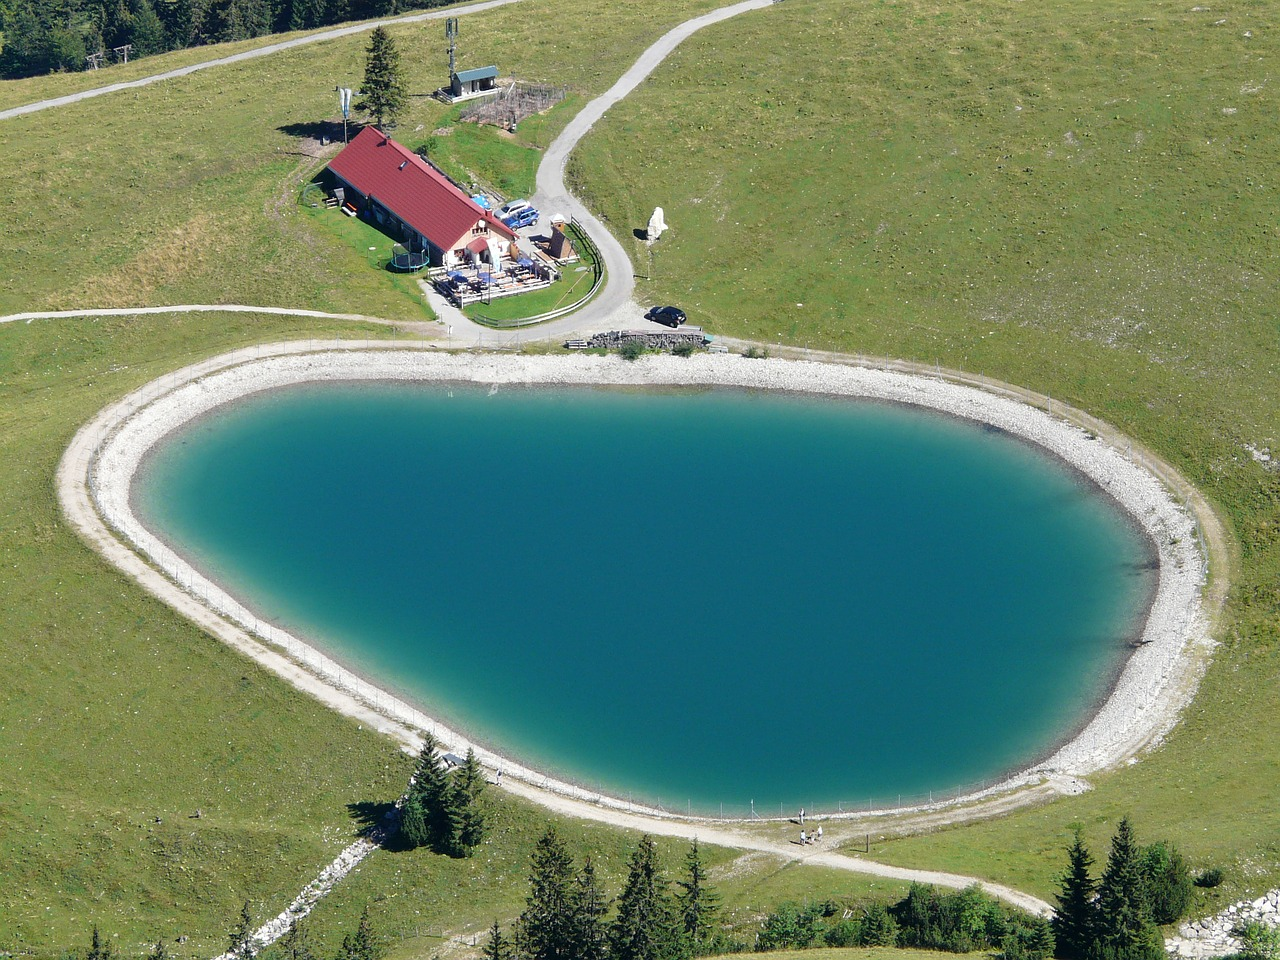 wiedhagalpe,reservoir,oberjoch,iseler,water storage,water reservoir,water,alpine,allgäu,almen,meadow,free pictures, free photos, free images, royalty free, free illustrations, public domain